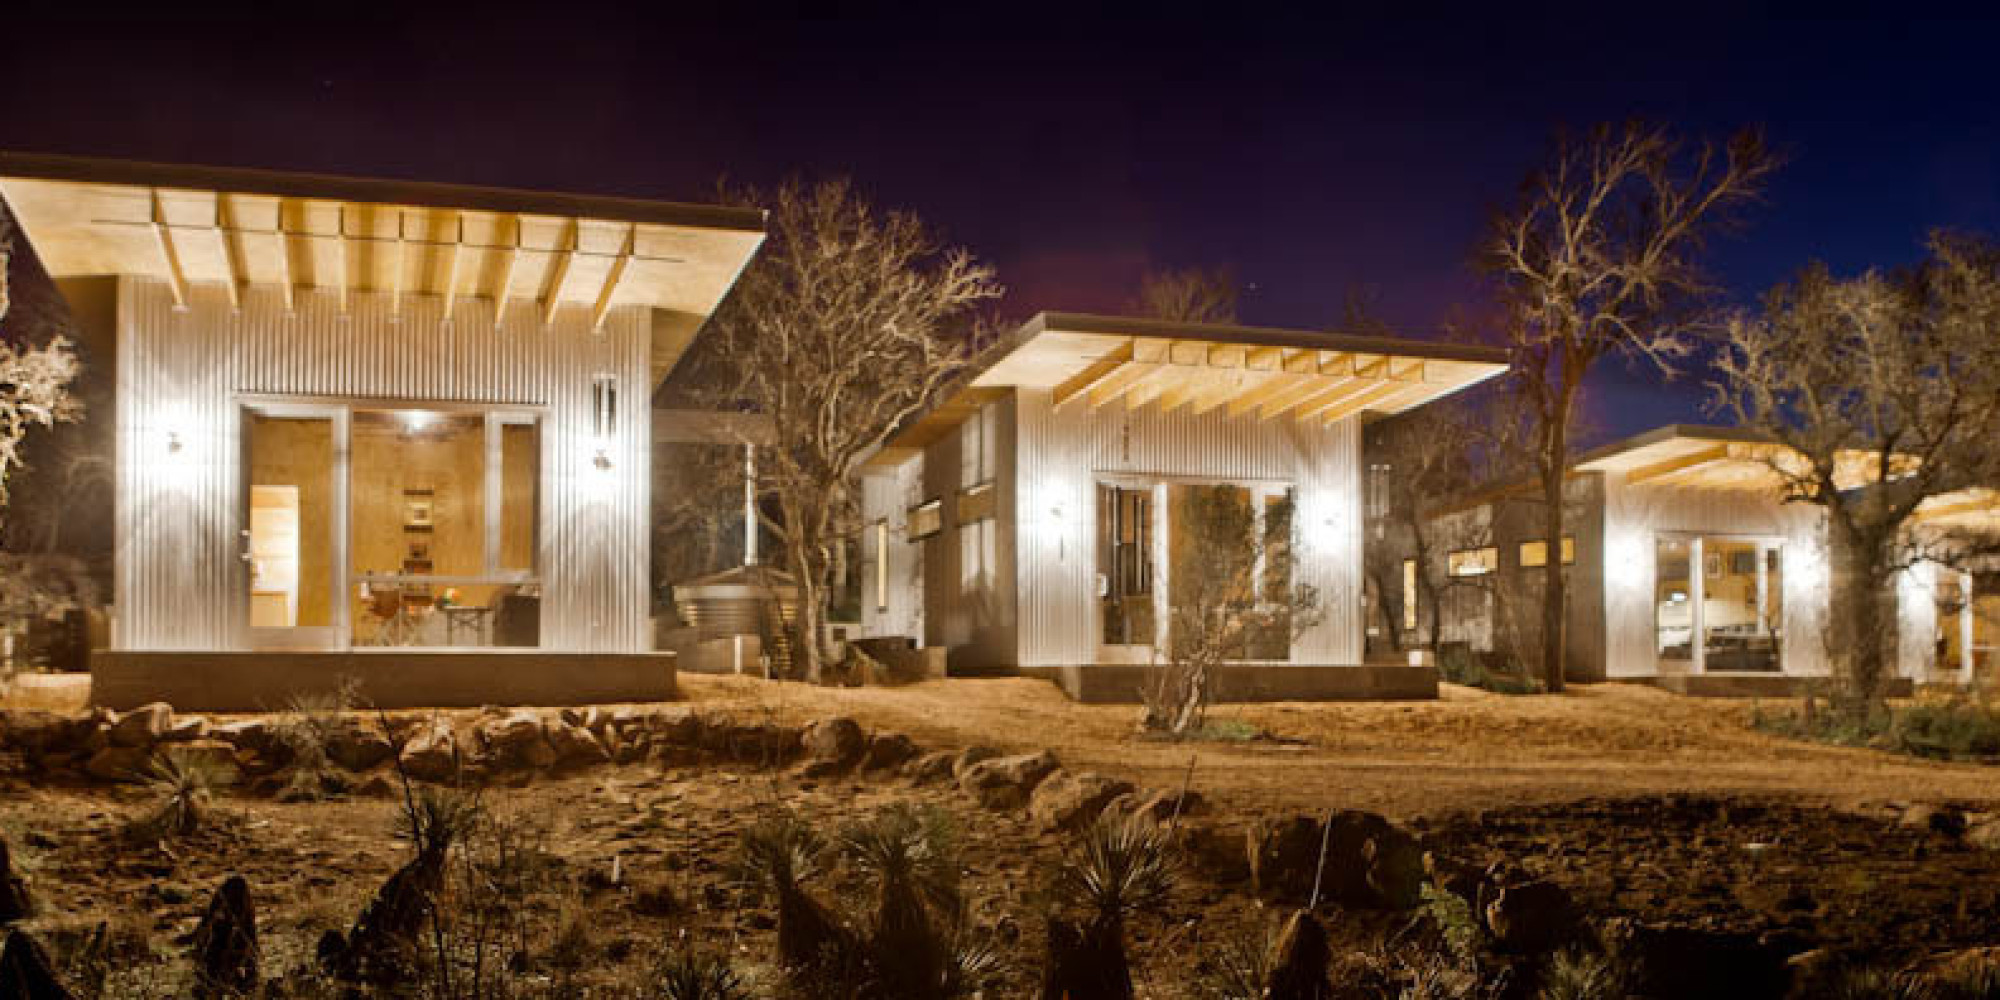 4 families built their own ranch made of tiny houses and its brilliant